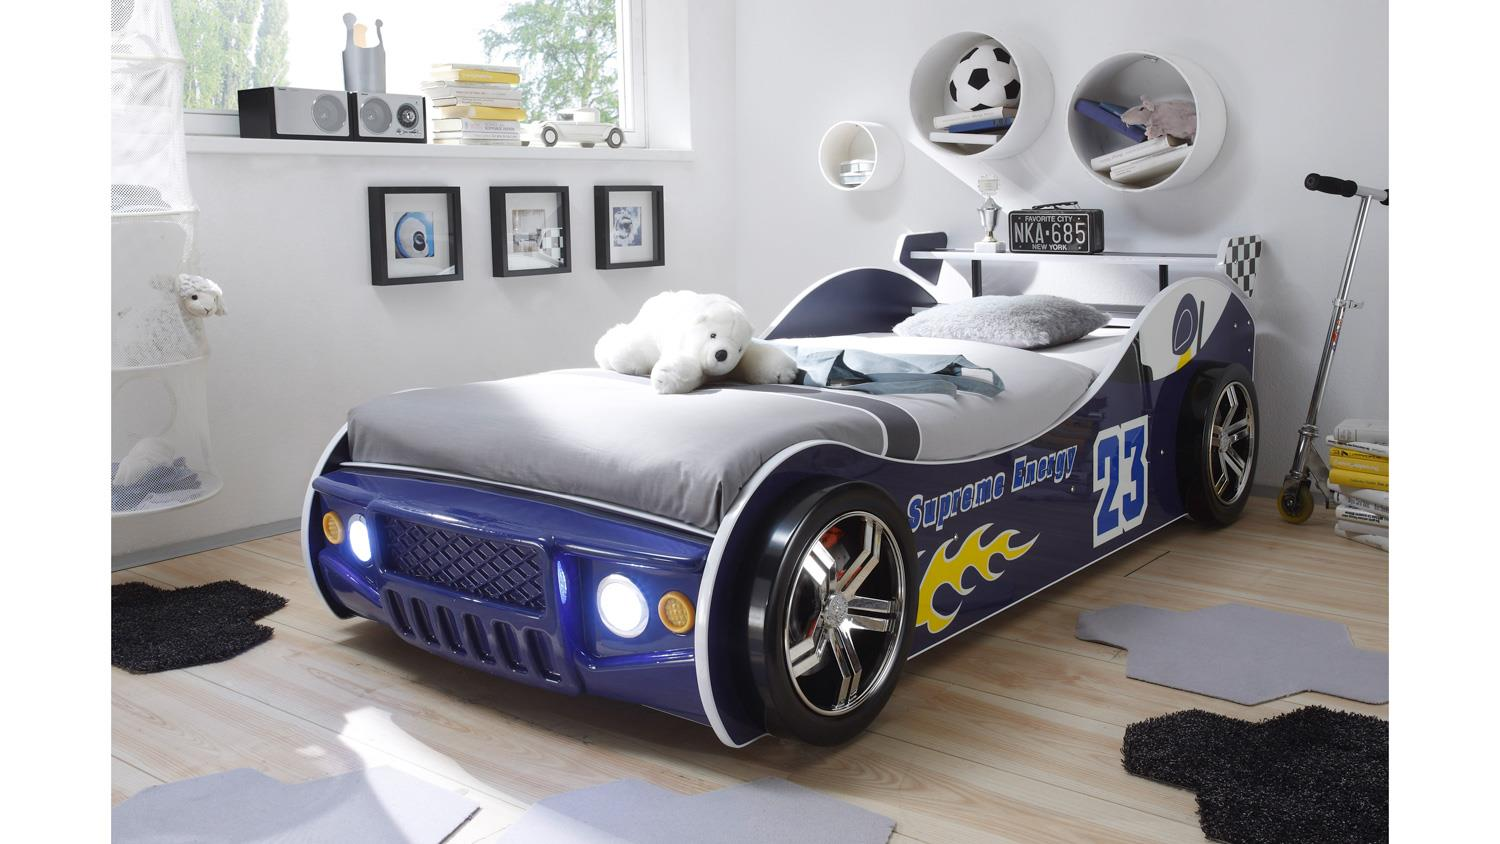 autobett energy kinderbett rennwagen blau mit beleuchtung. Black Bedroom Furniture Sets. Home Design Ideas